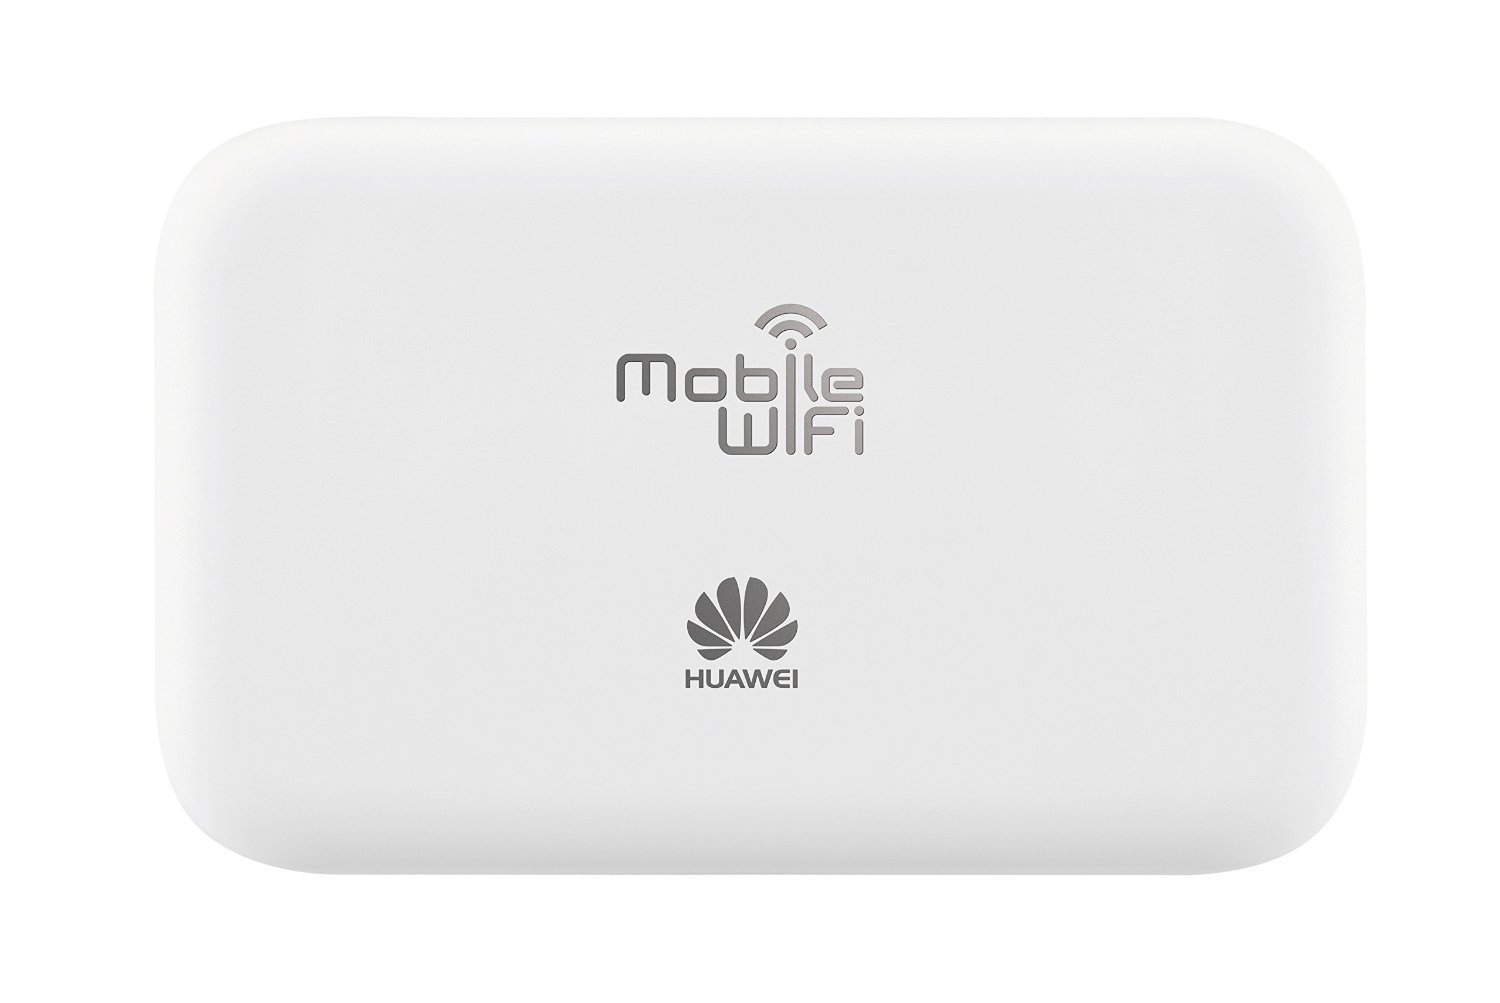 Huawei E5372s 22 150 Mbps 4g Lte 42 3g Mobile Bolt Slim 1 Unlock Wifi Hotspot In Europe Asia Middle East Africa Computers Accessories